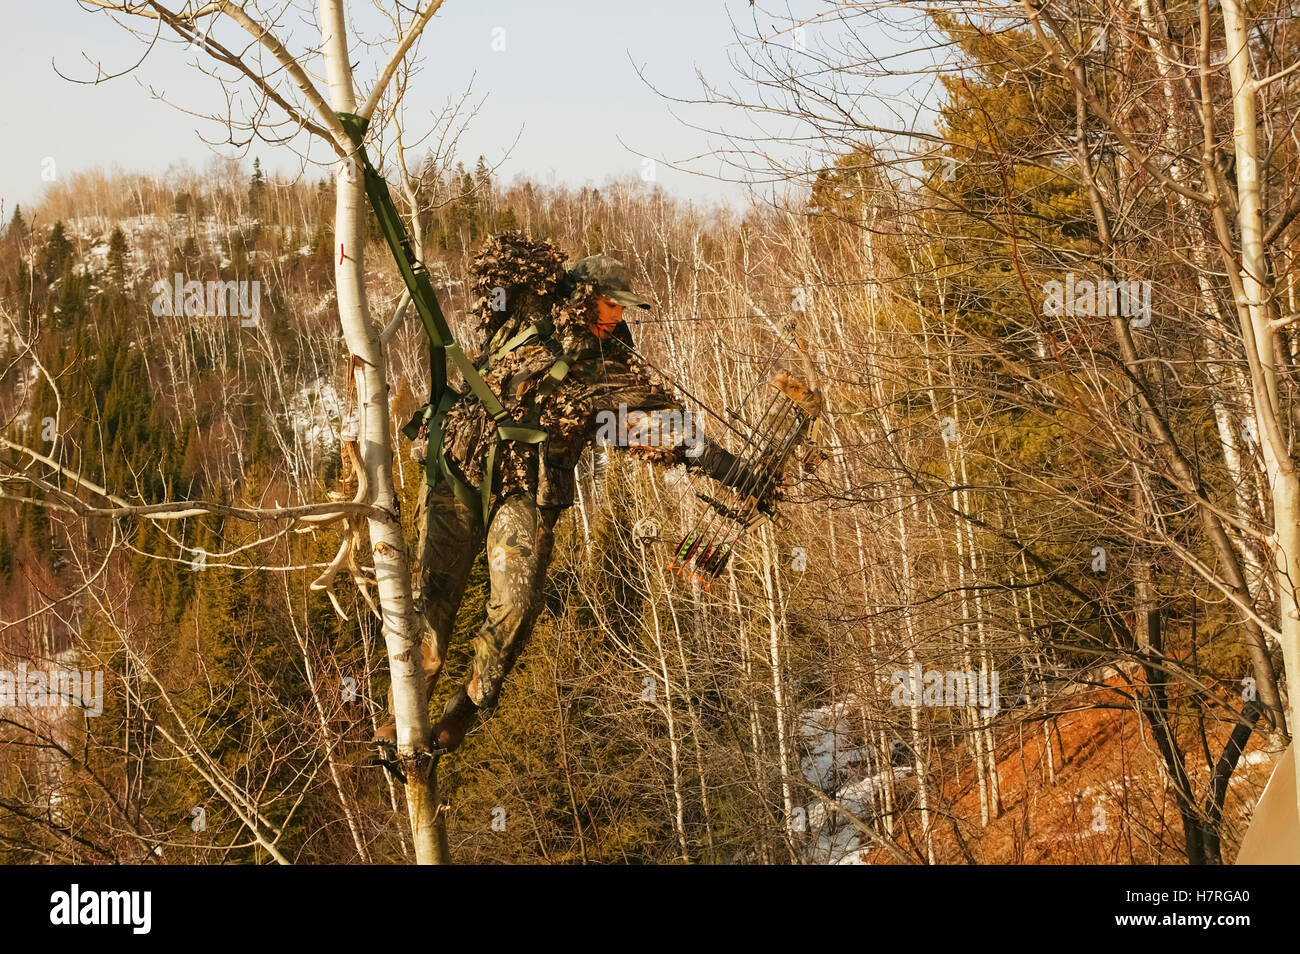 Fall Wallpaper With Deer Bowhunter In Tree Saddle Drawing Bow Stock Photo